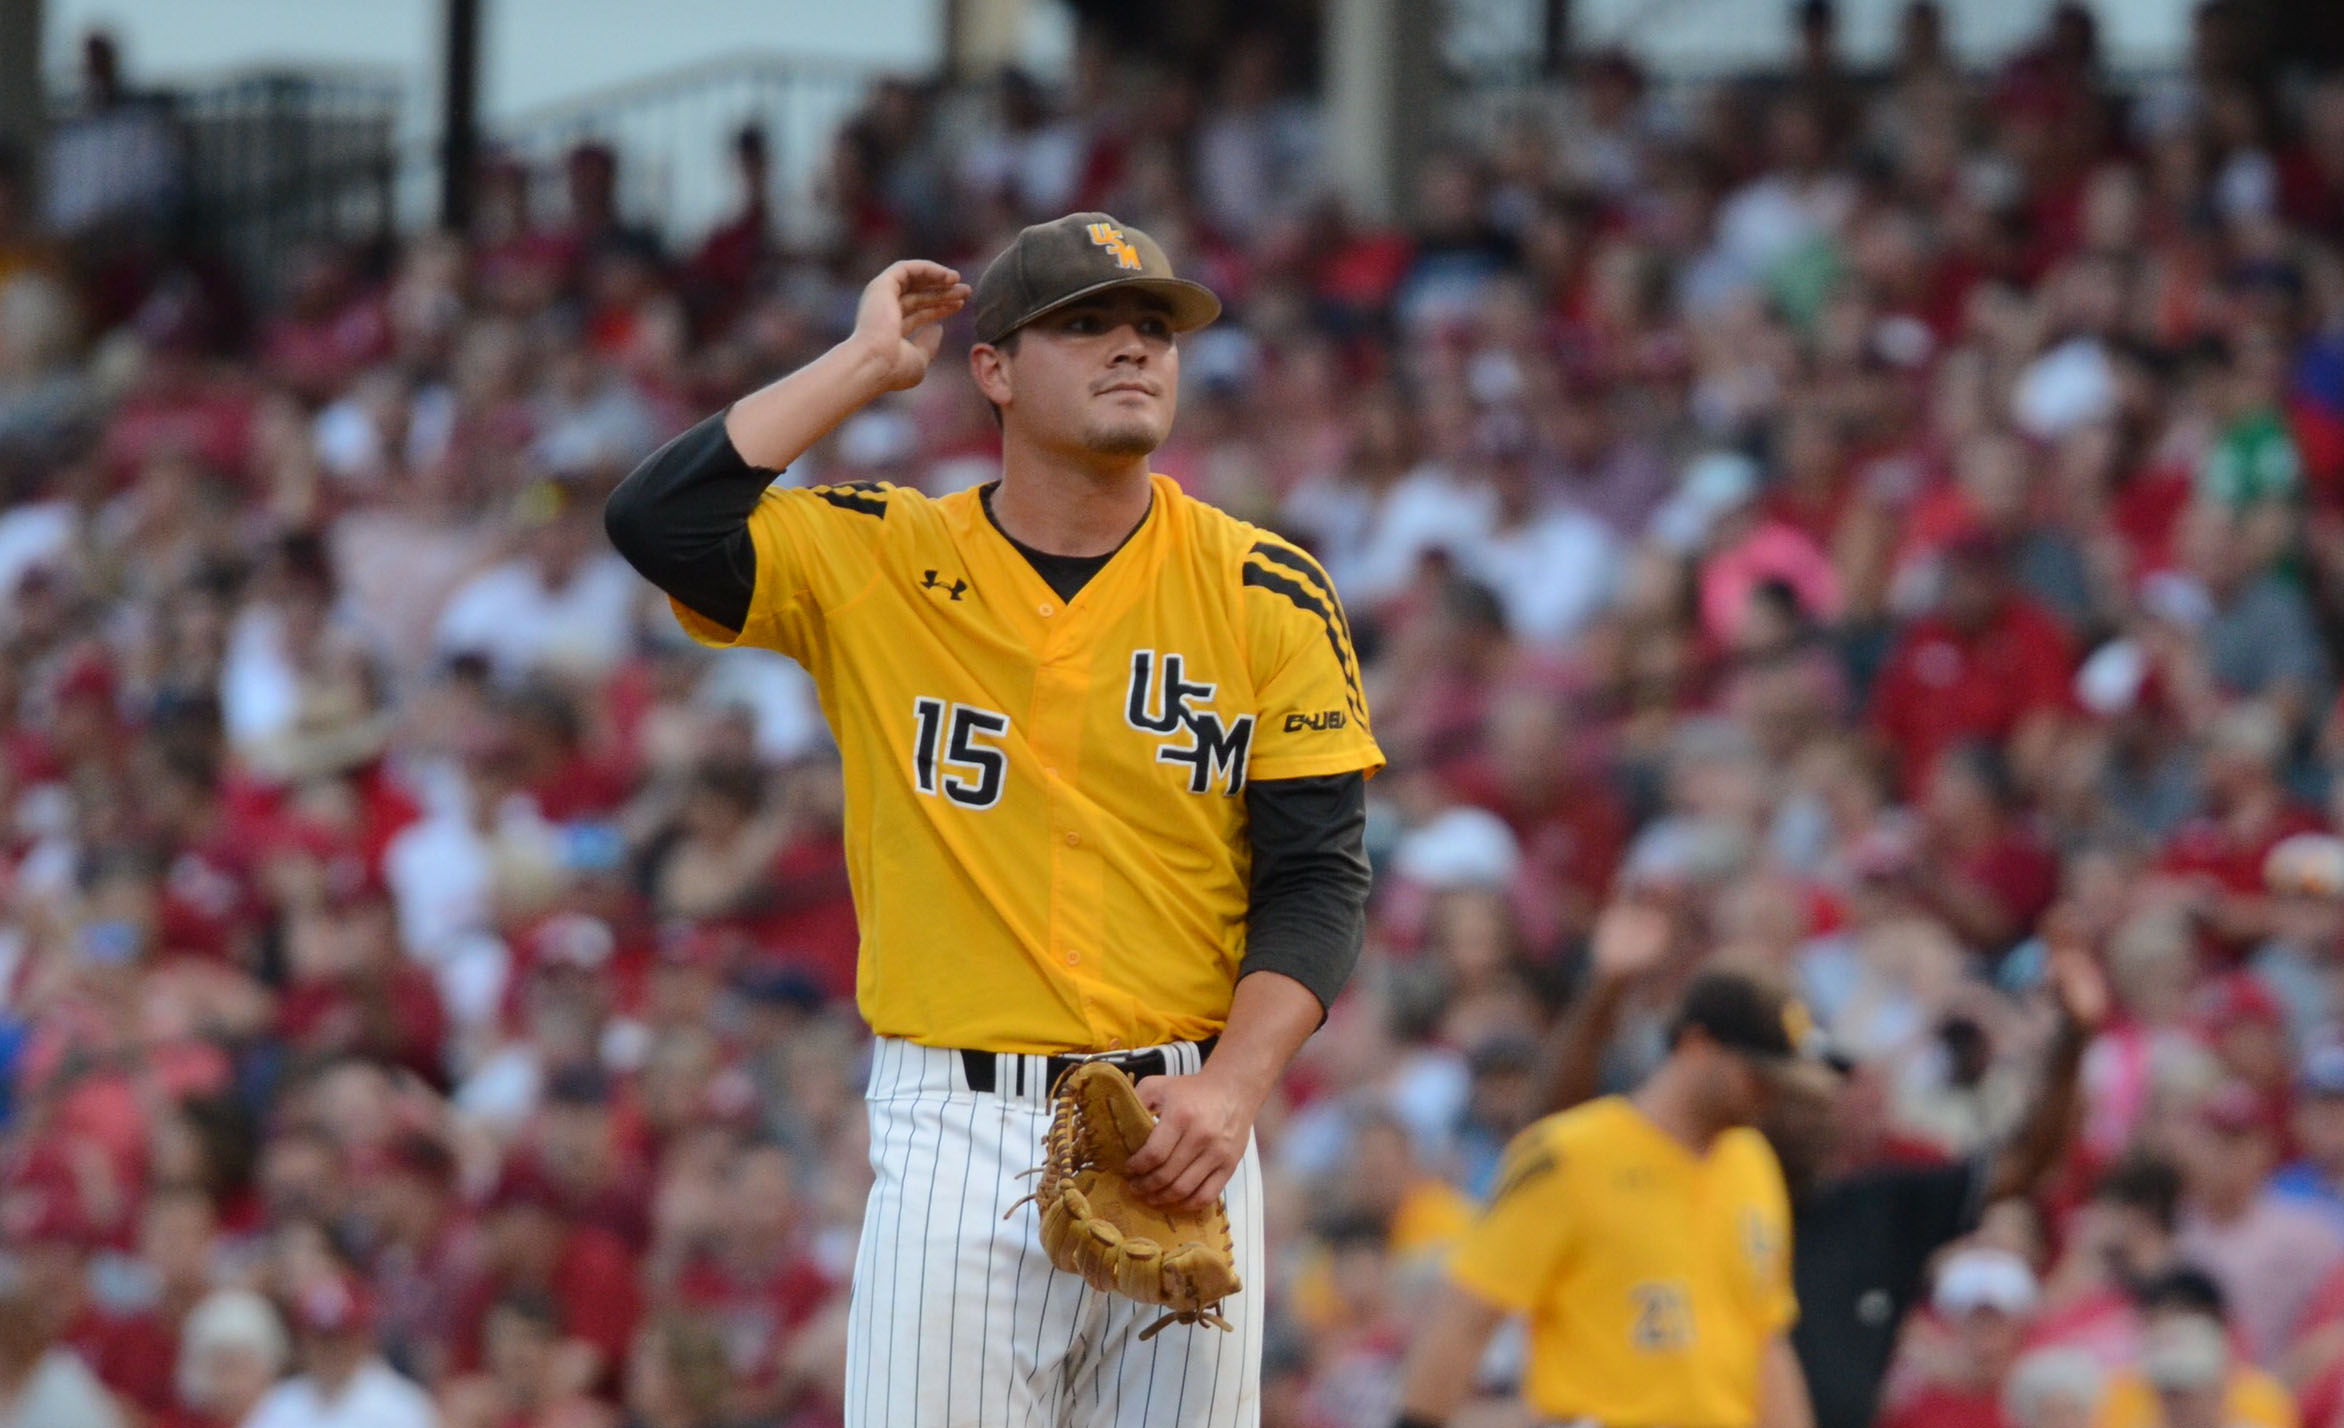 Southern Miss will rematch Dallas Baptist after 10-2 loss to Arkansas